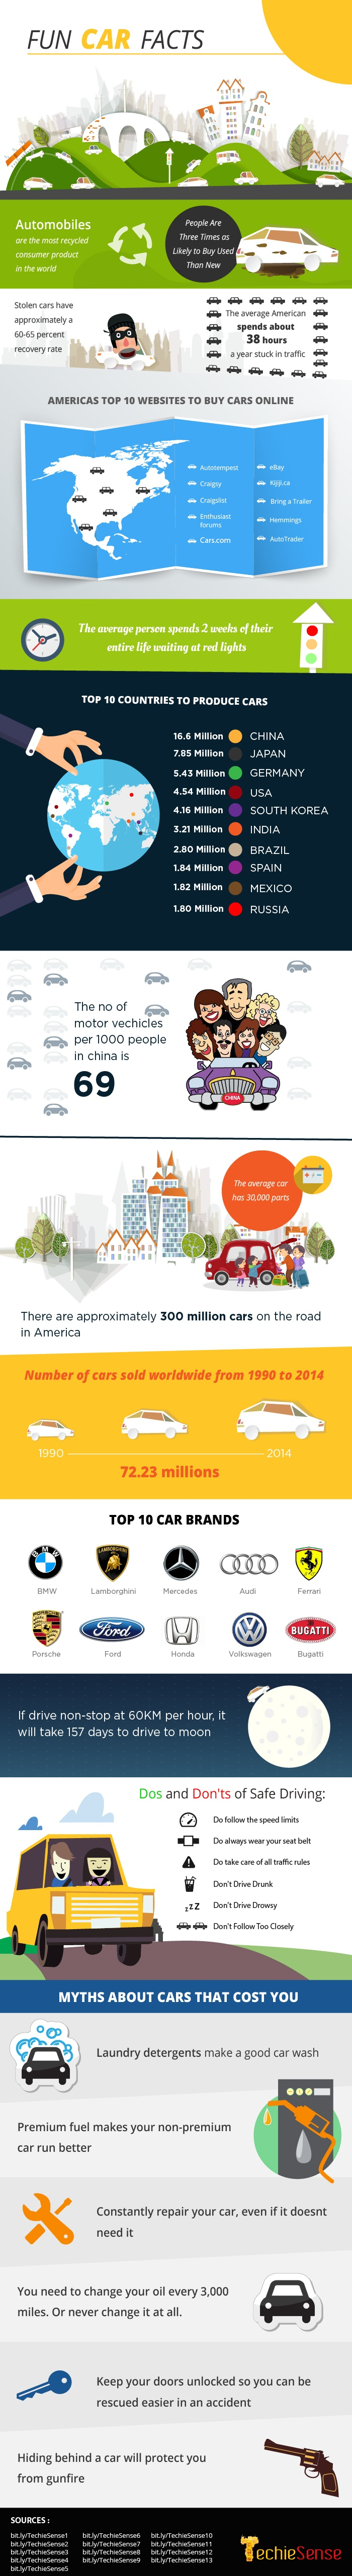 car fun facts infographic